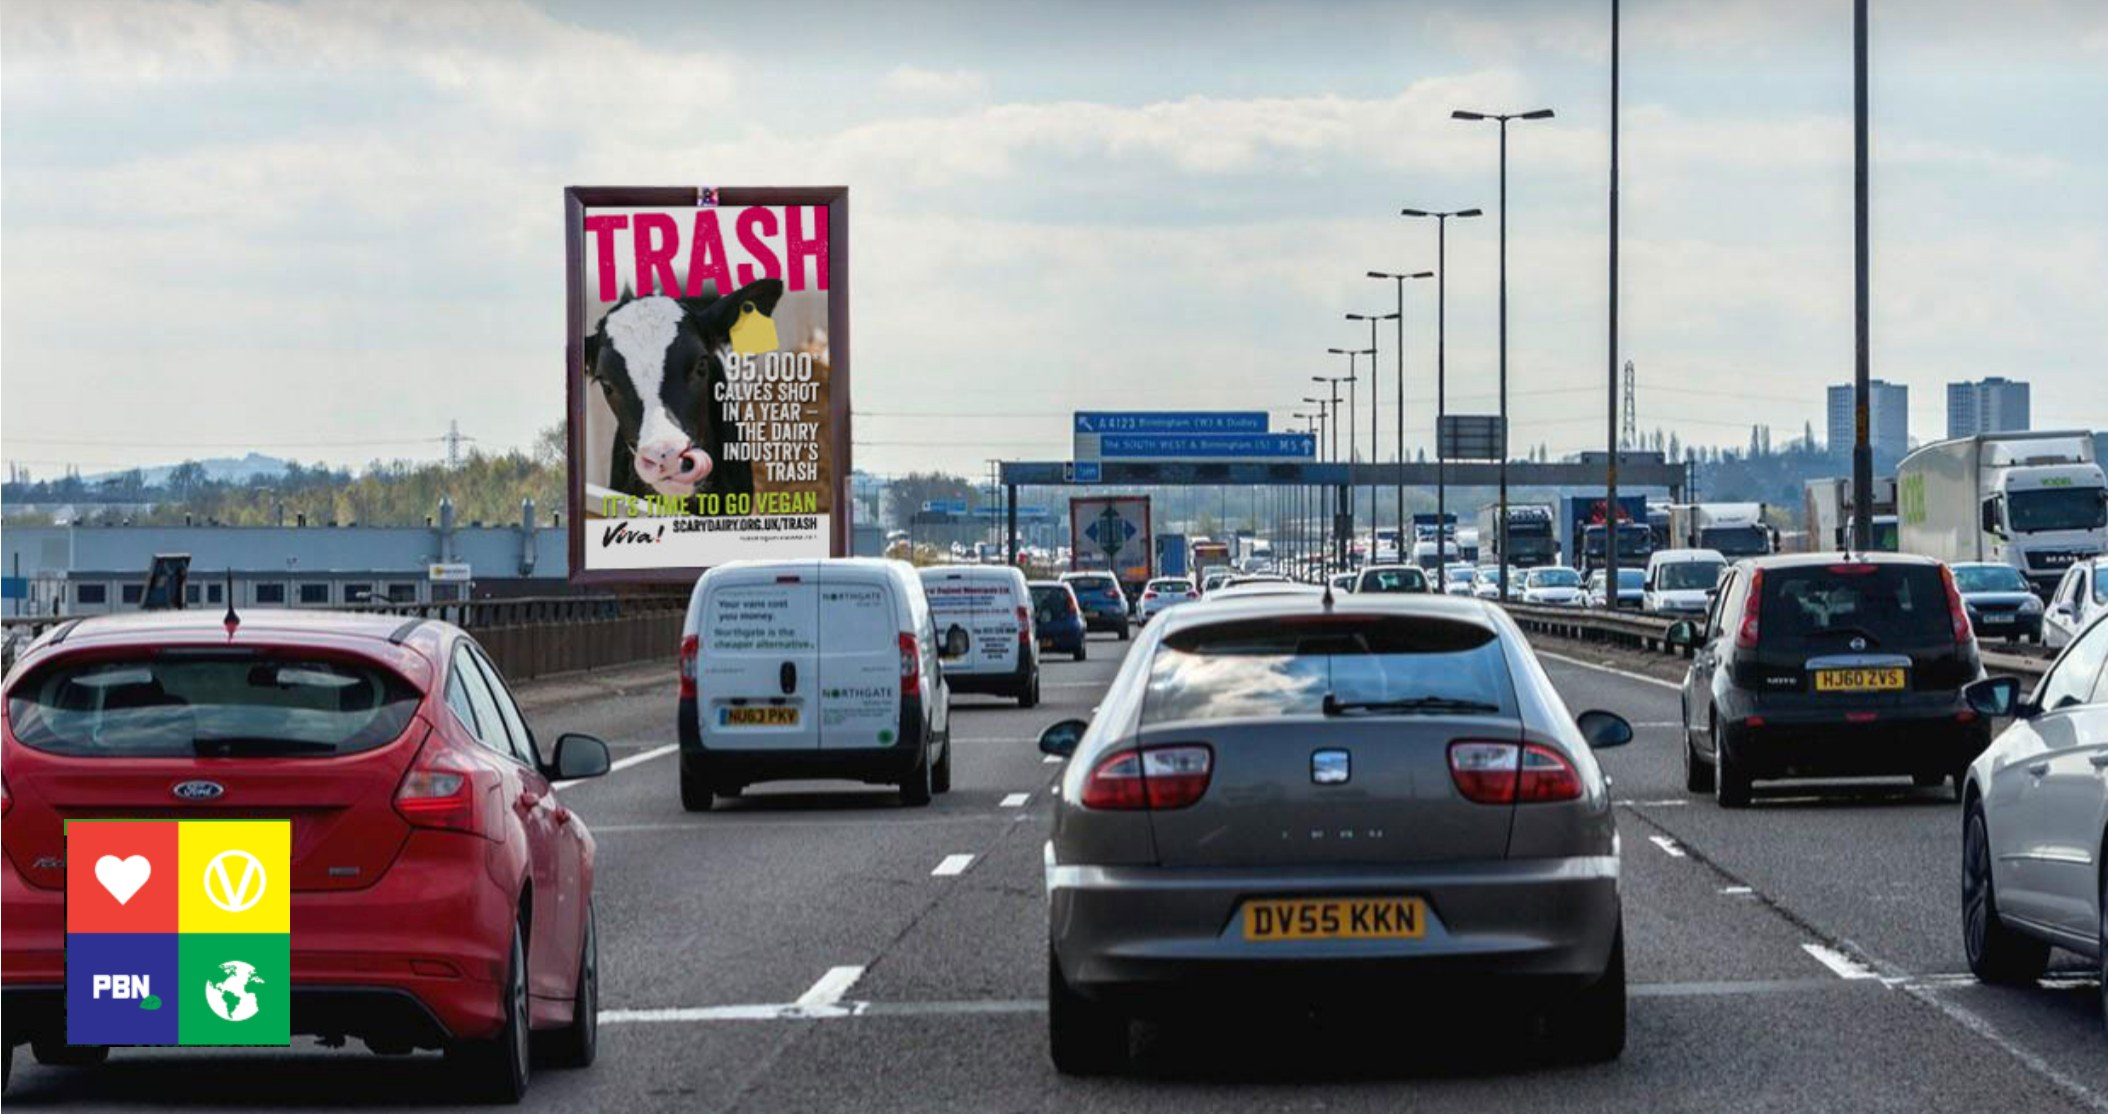 Pro-vegan billboards on UK motorway